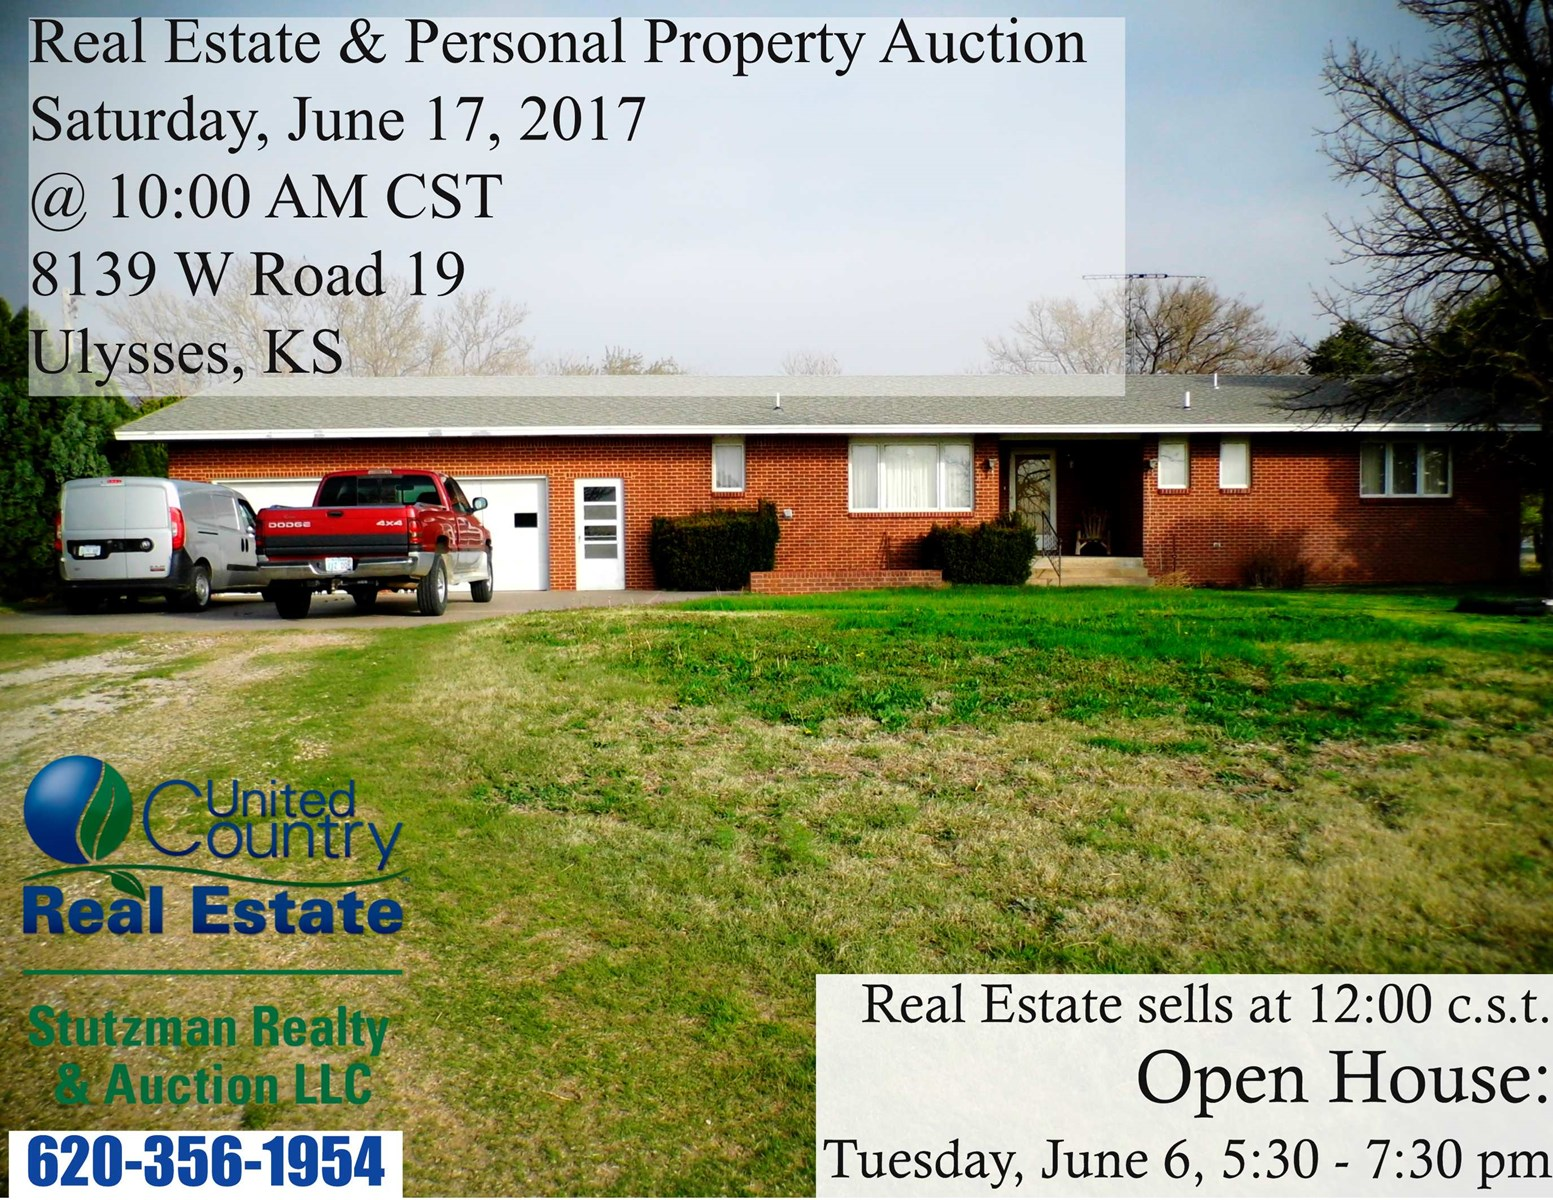 BRICK HOME UP FOR PUBLIC AUCTION JUNE 17, 2017 IN ULYSSES KS